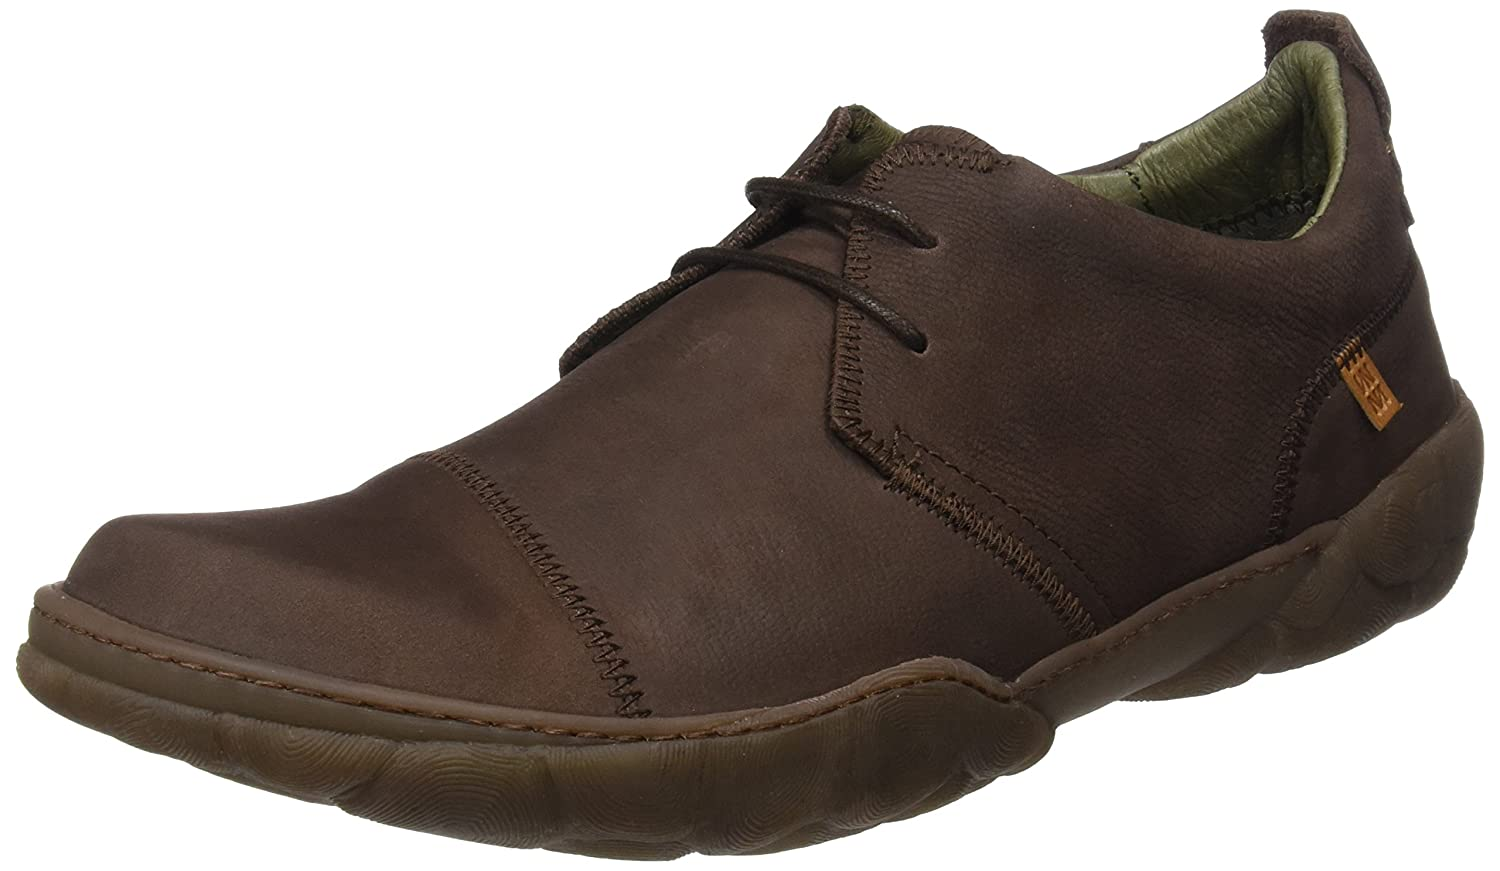 TALLA 42 EU. El Naturalista N5080 Pleasant Brown/Turtle, Zapatos de Cordones Brogue para Hombre